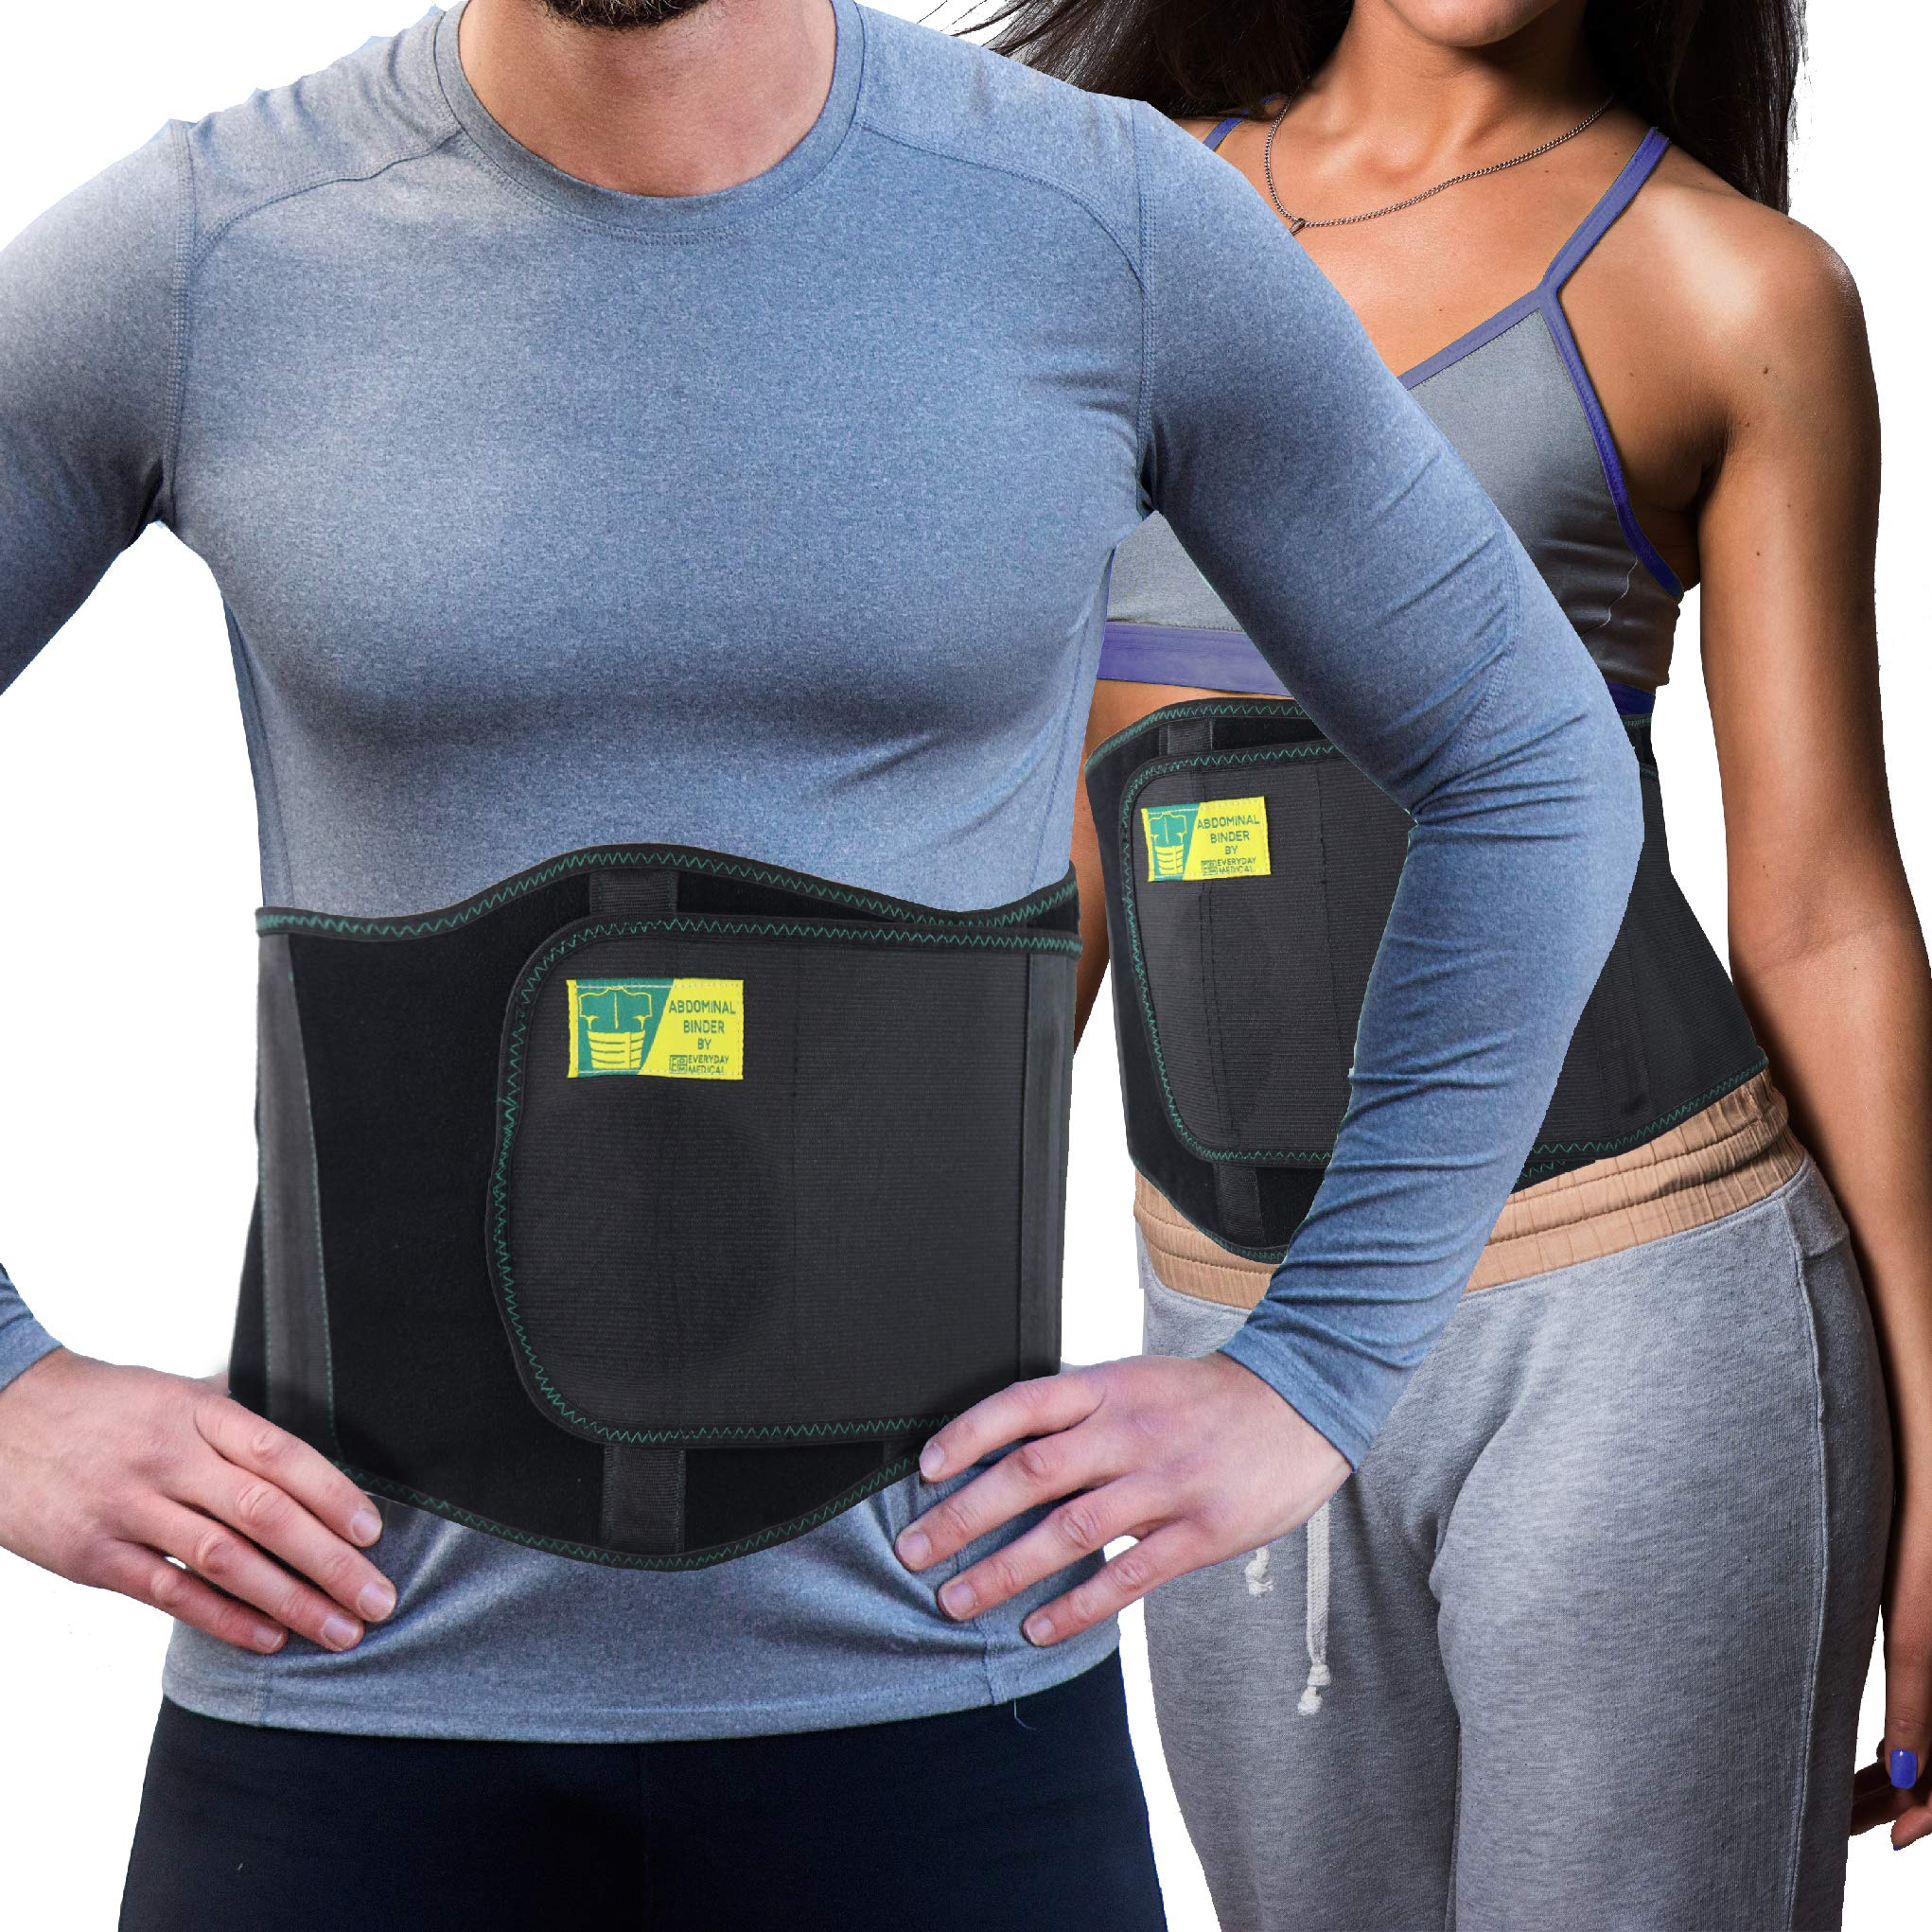 Ergonomic Umbilical Hernia Belt – Abdominal Binder for Hernia Support – Umbilical Navel Hernia Strap with Compression Pad – Ventral Hernia Support for Men and Women - Large/XXL Plus Size (42-57 in) by Everyday Medical (Image #1)